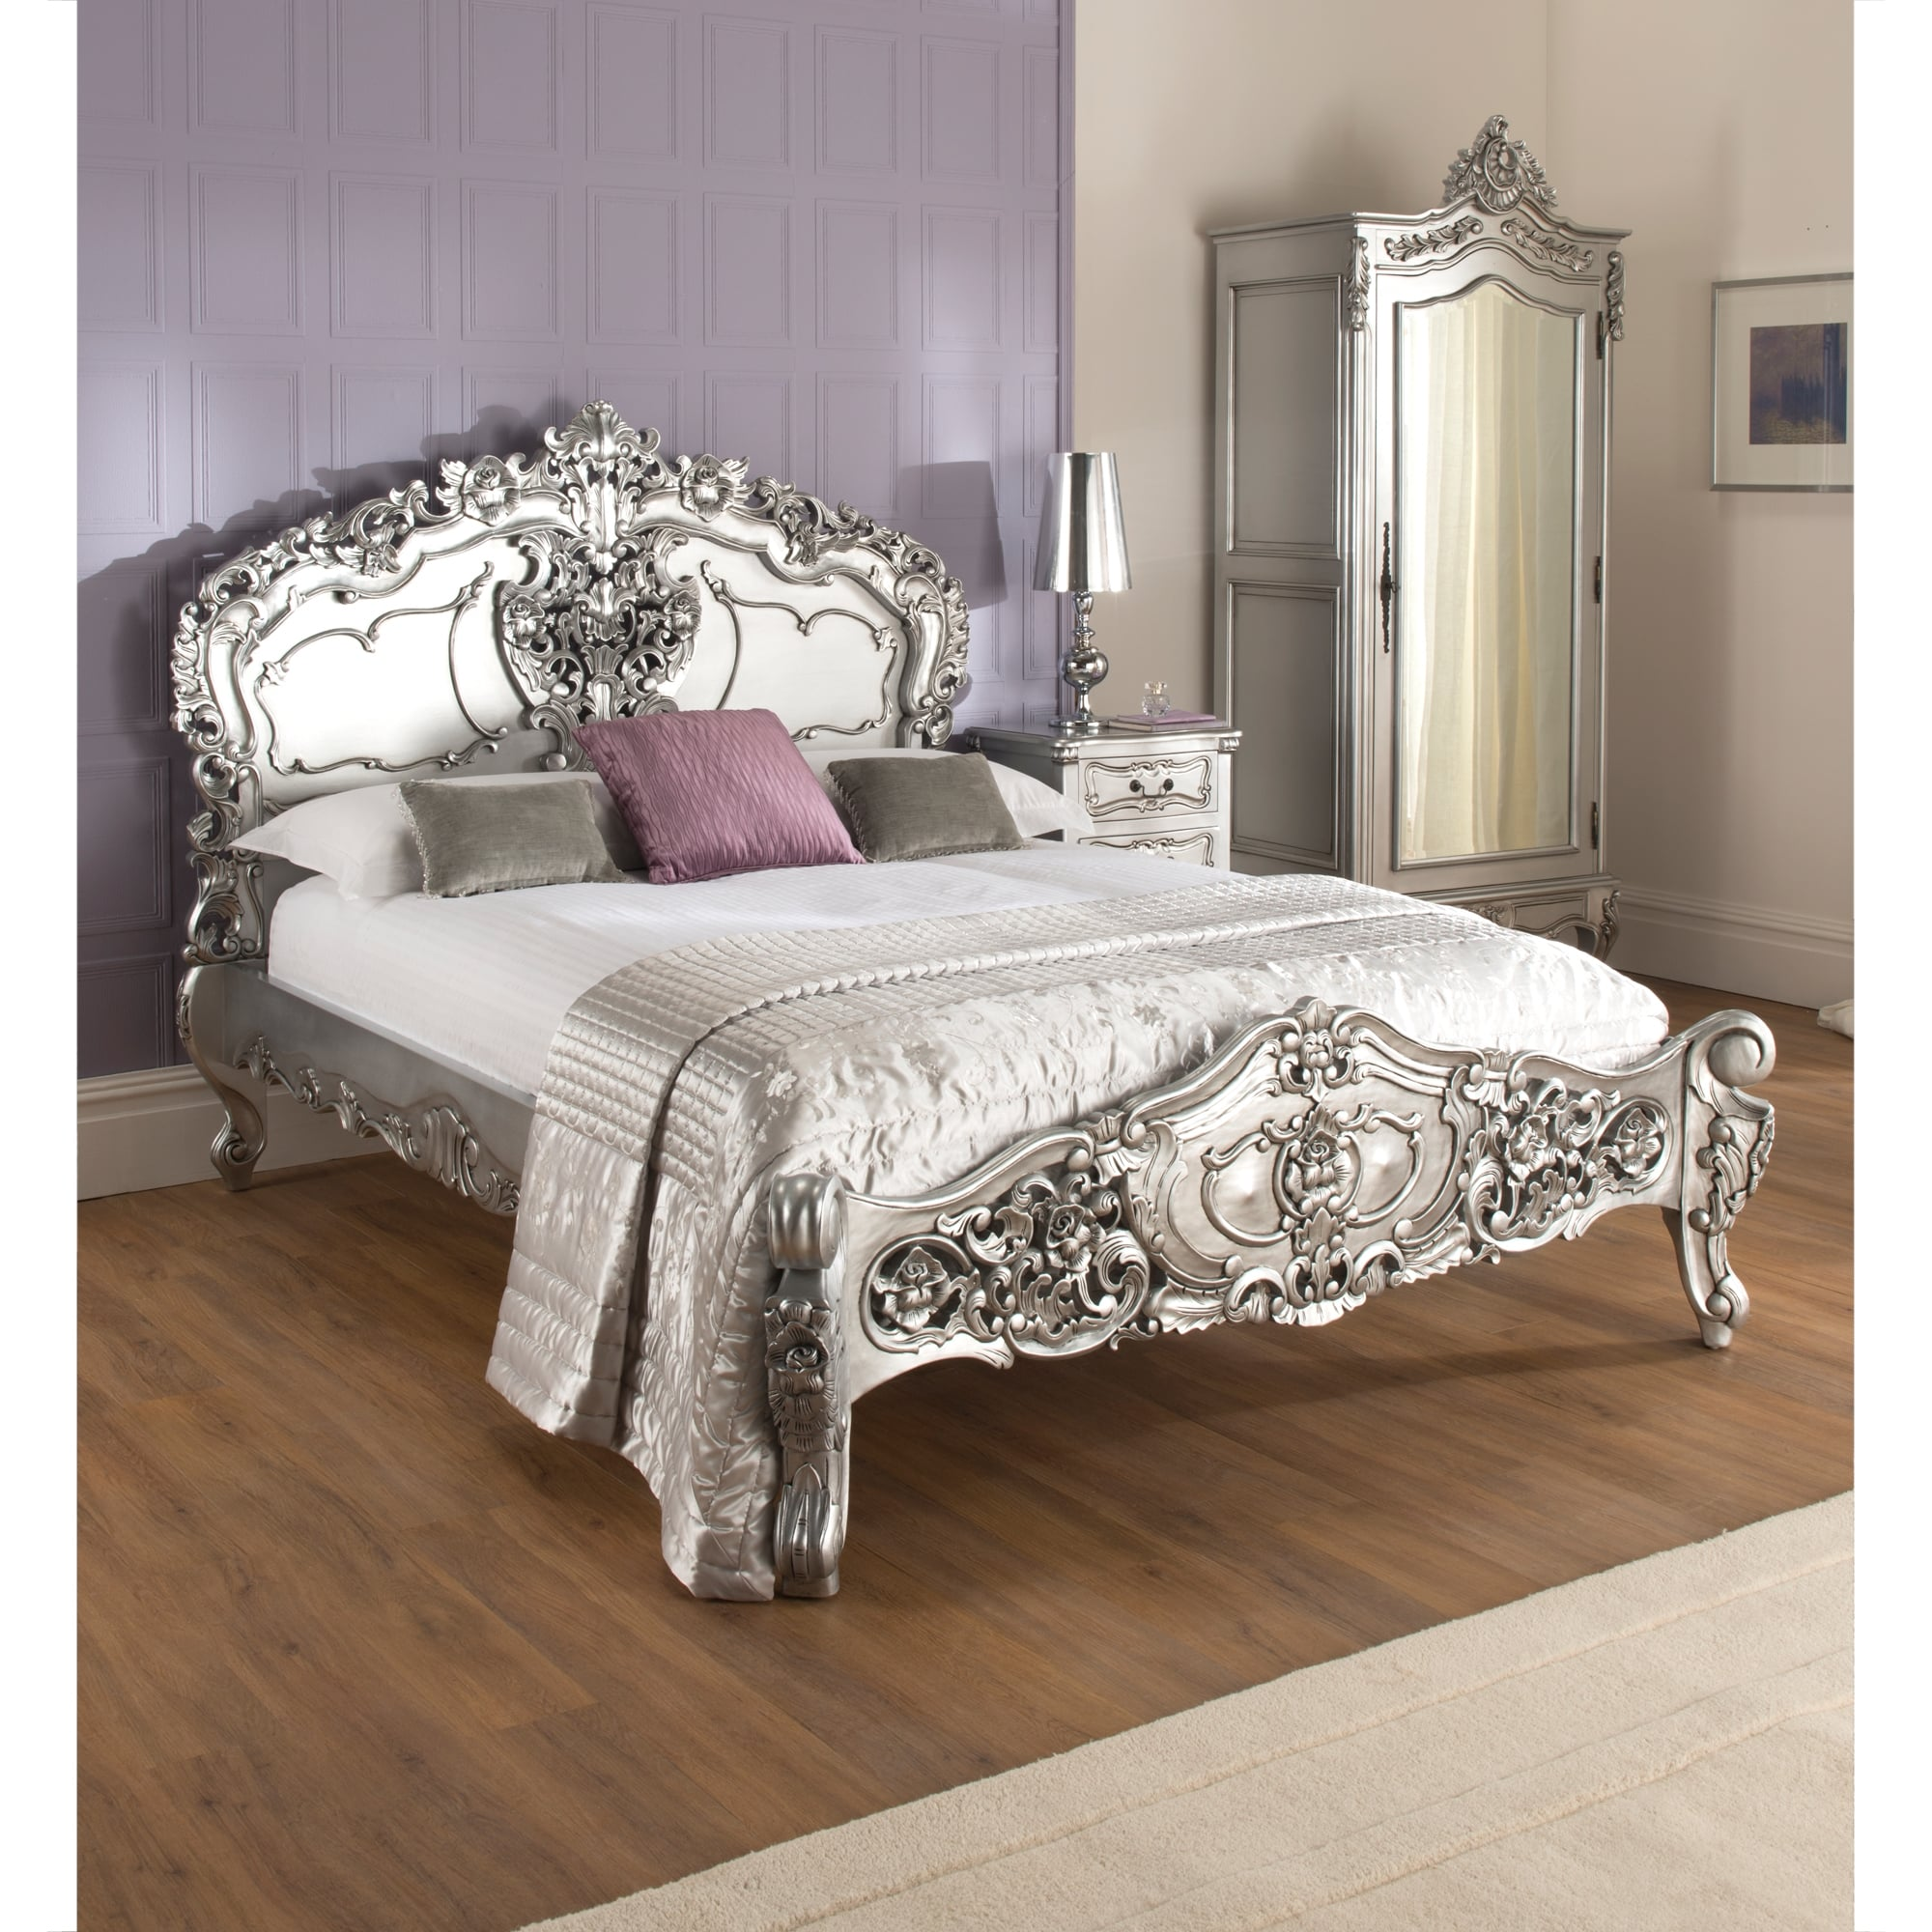 Marvelous La Rochelle Silver Rococo Antique French Bed